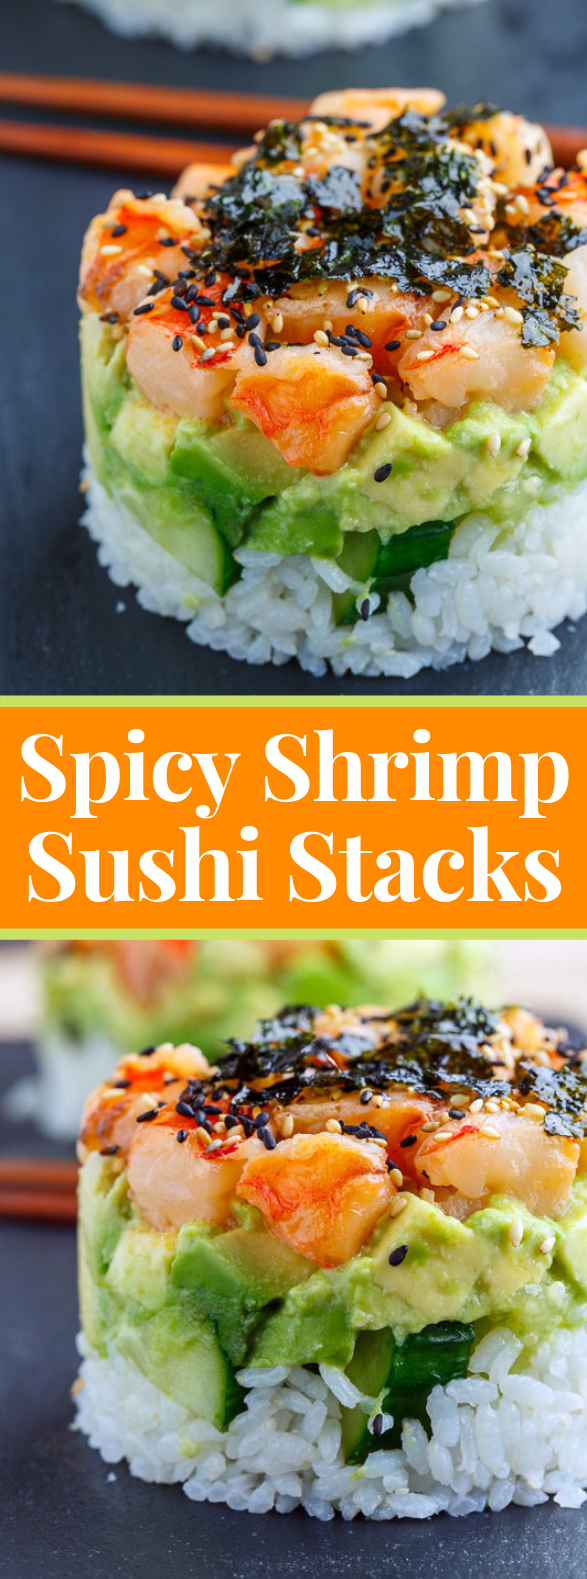 Spicy Shrimp Sushi Stacks #lowcarb #glutenfree